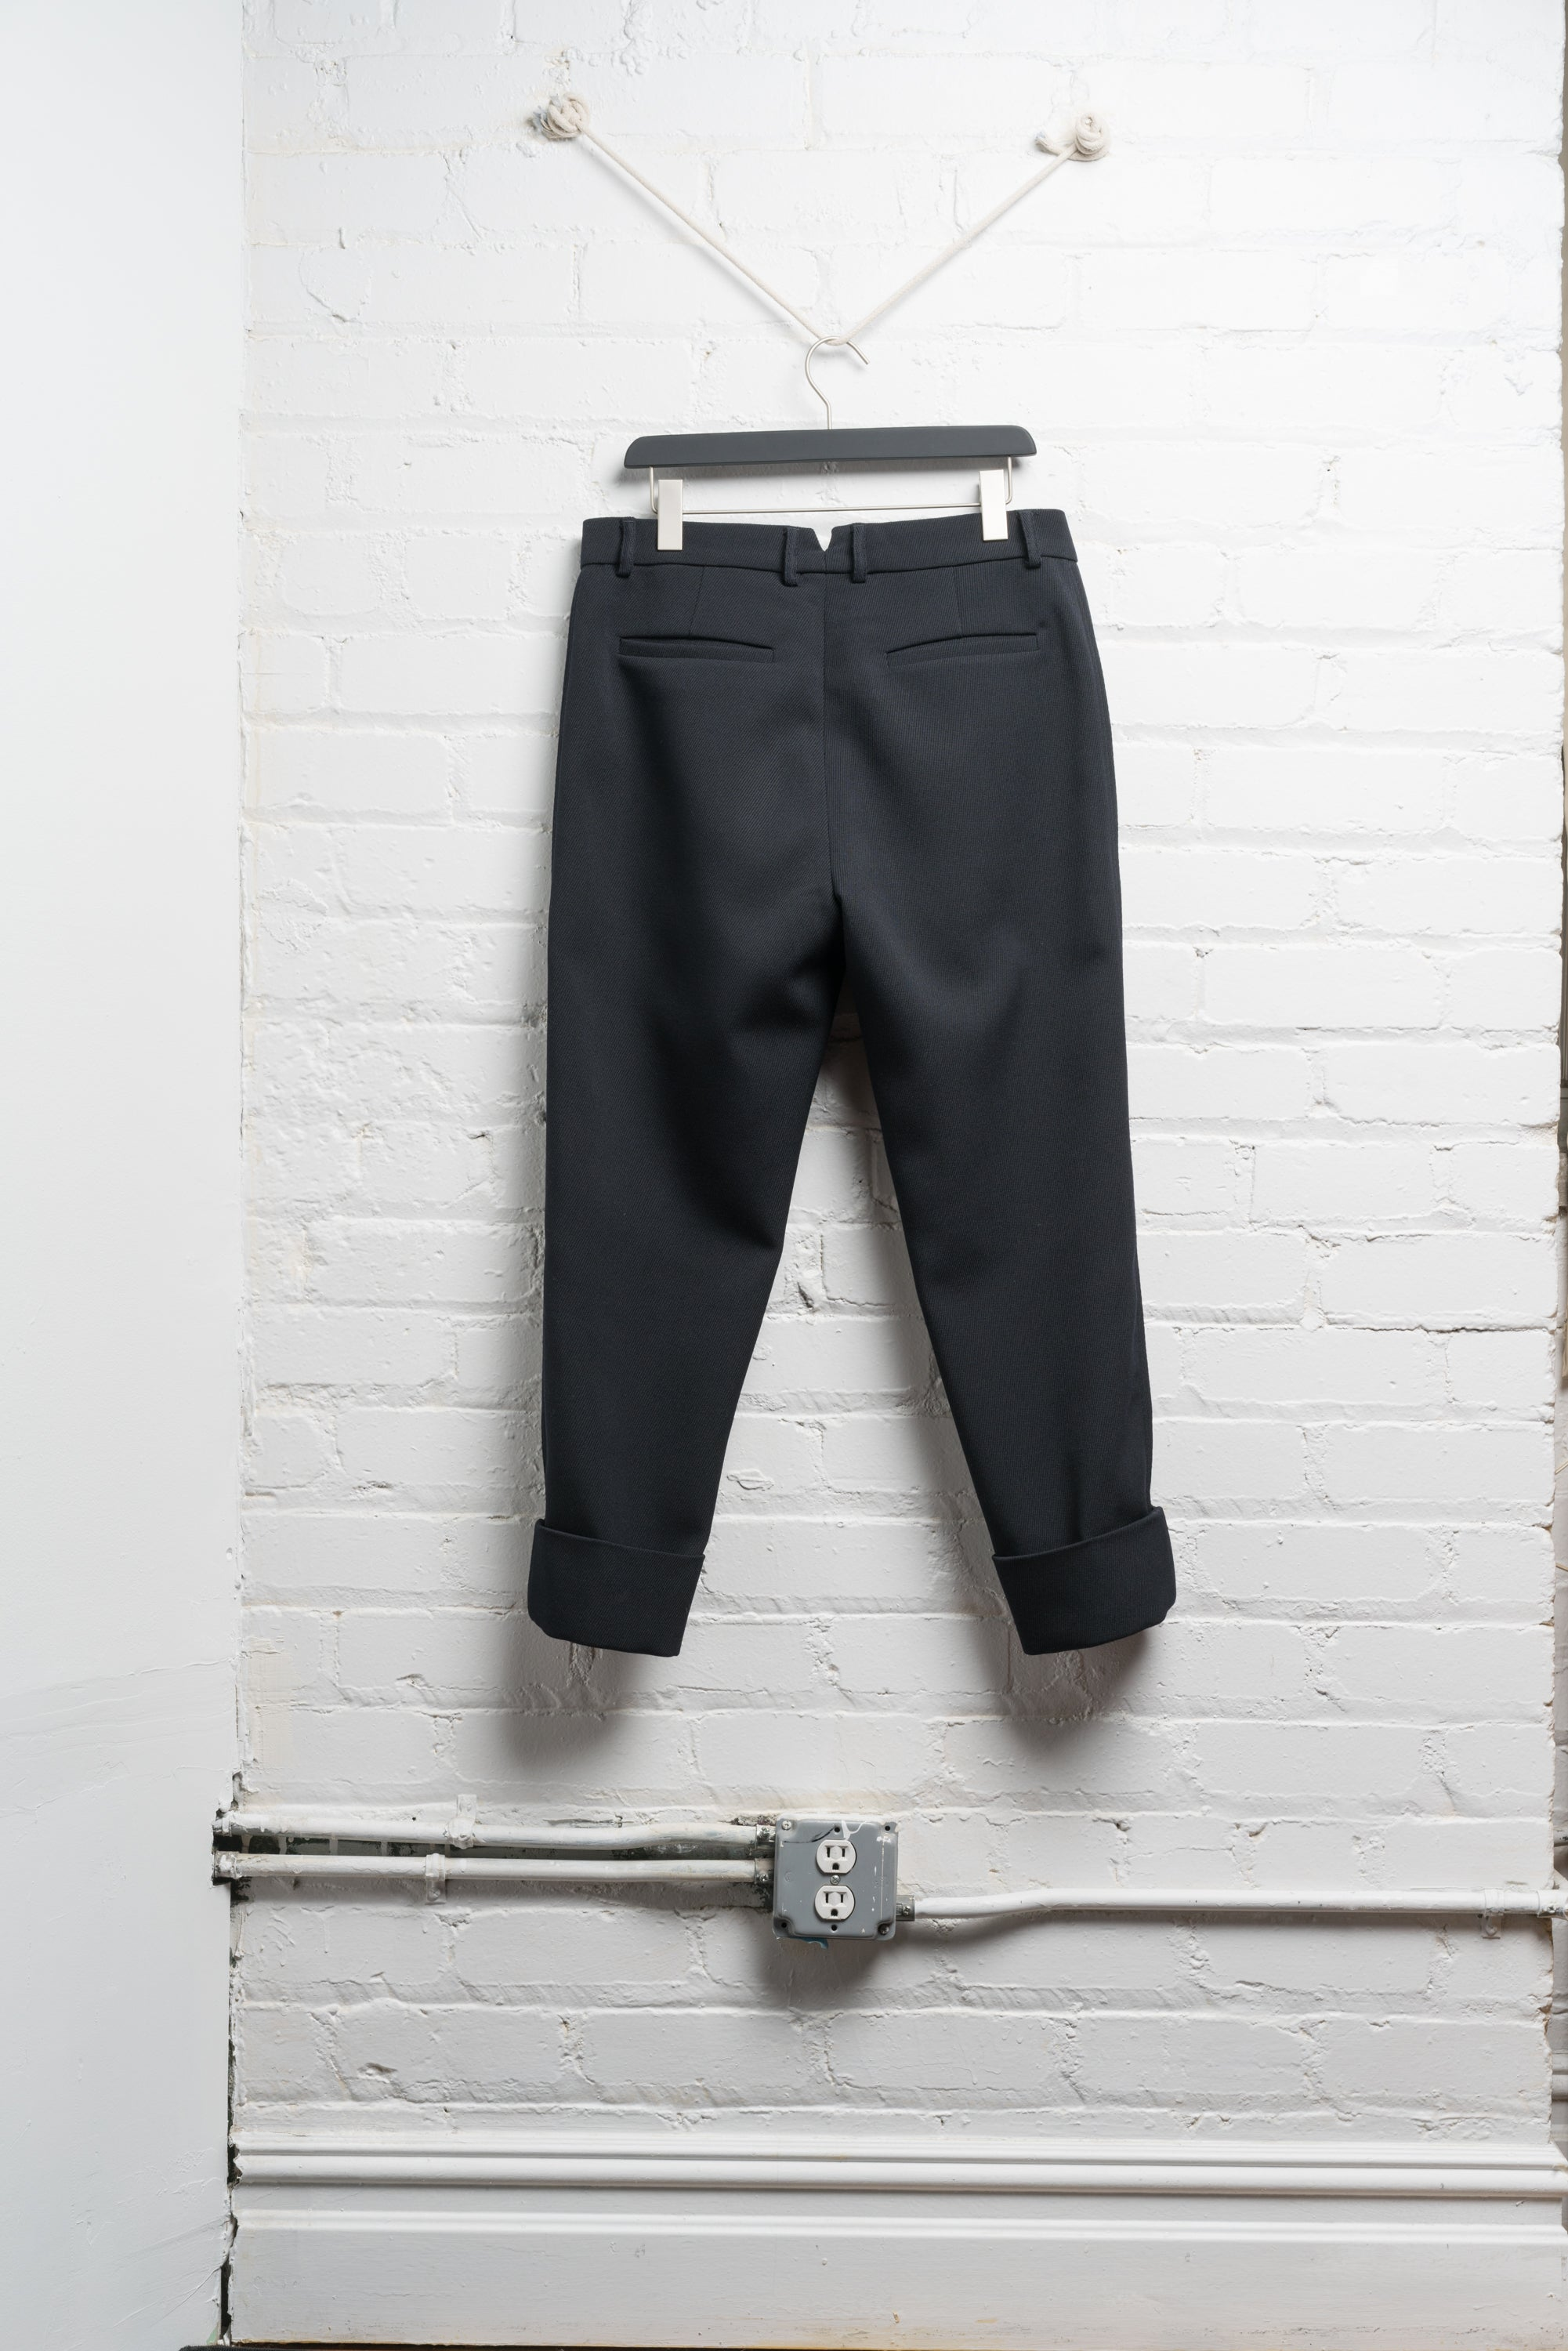 CUFFED WOOL TROUSER IN BORDEAUX IN NAVY TWILL (PRE ORDER)